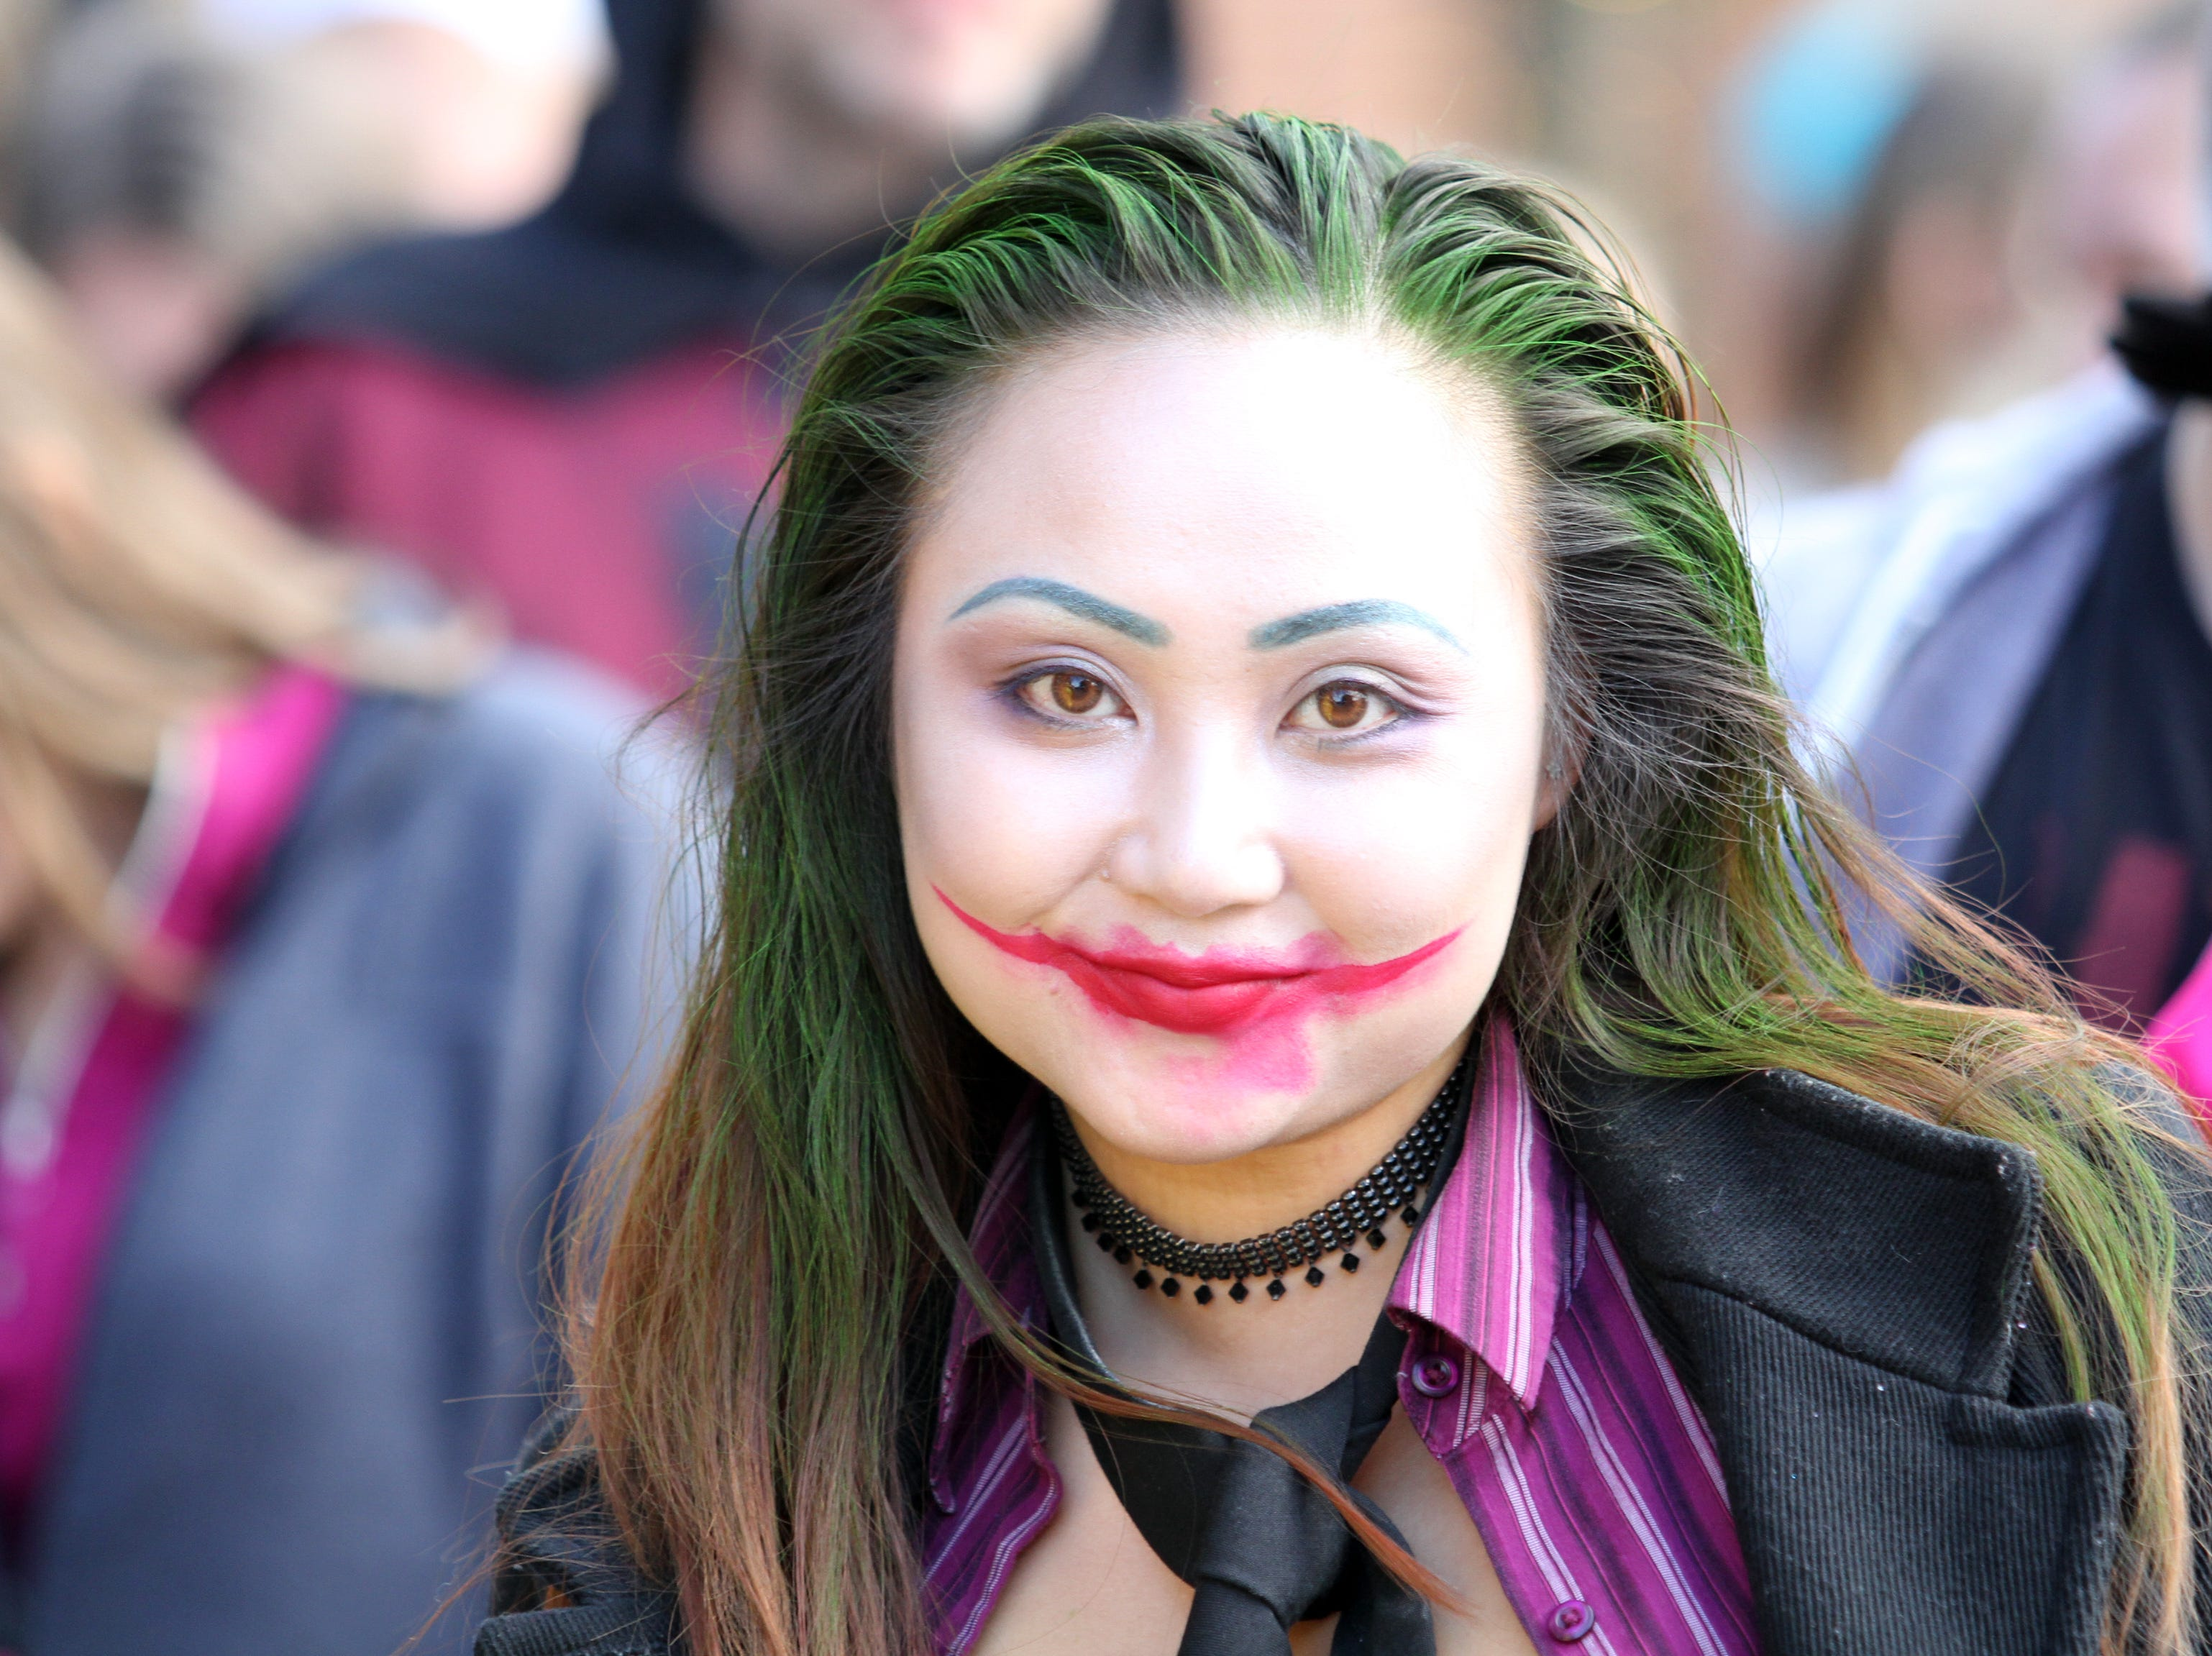 Victoria Clark Was The Joker on Saturday, October 27, 2018 for Clarksville's annual Fright on Franklin.